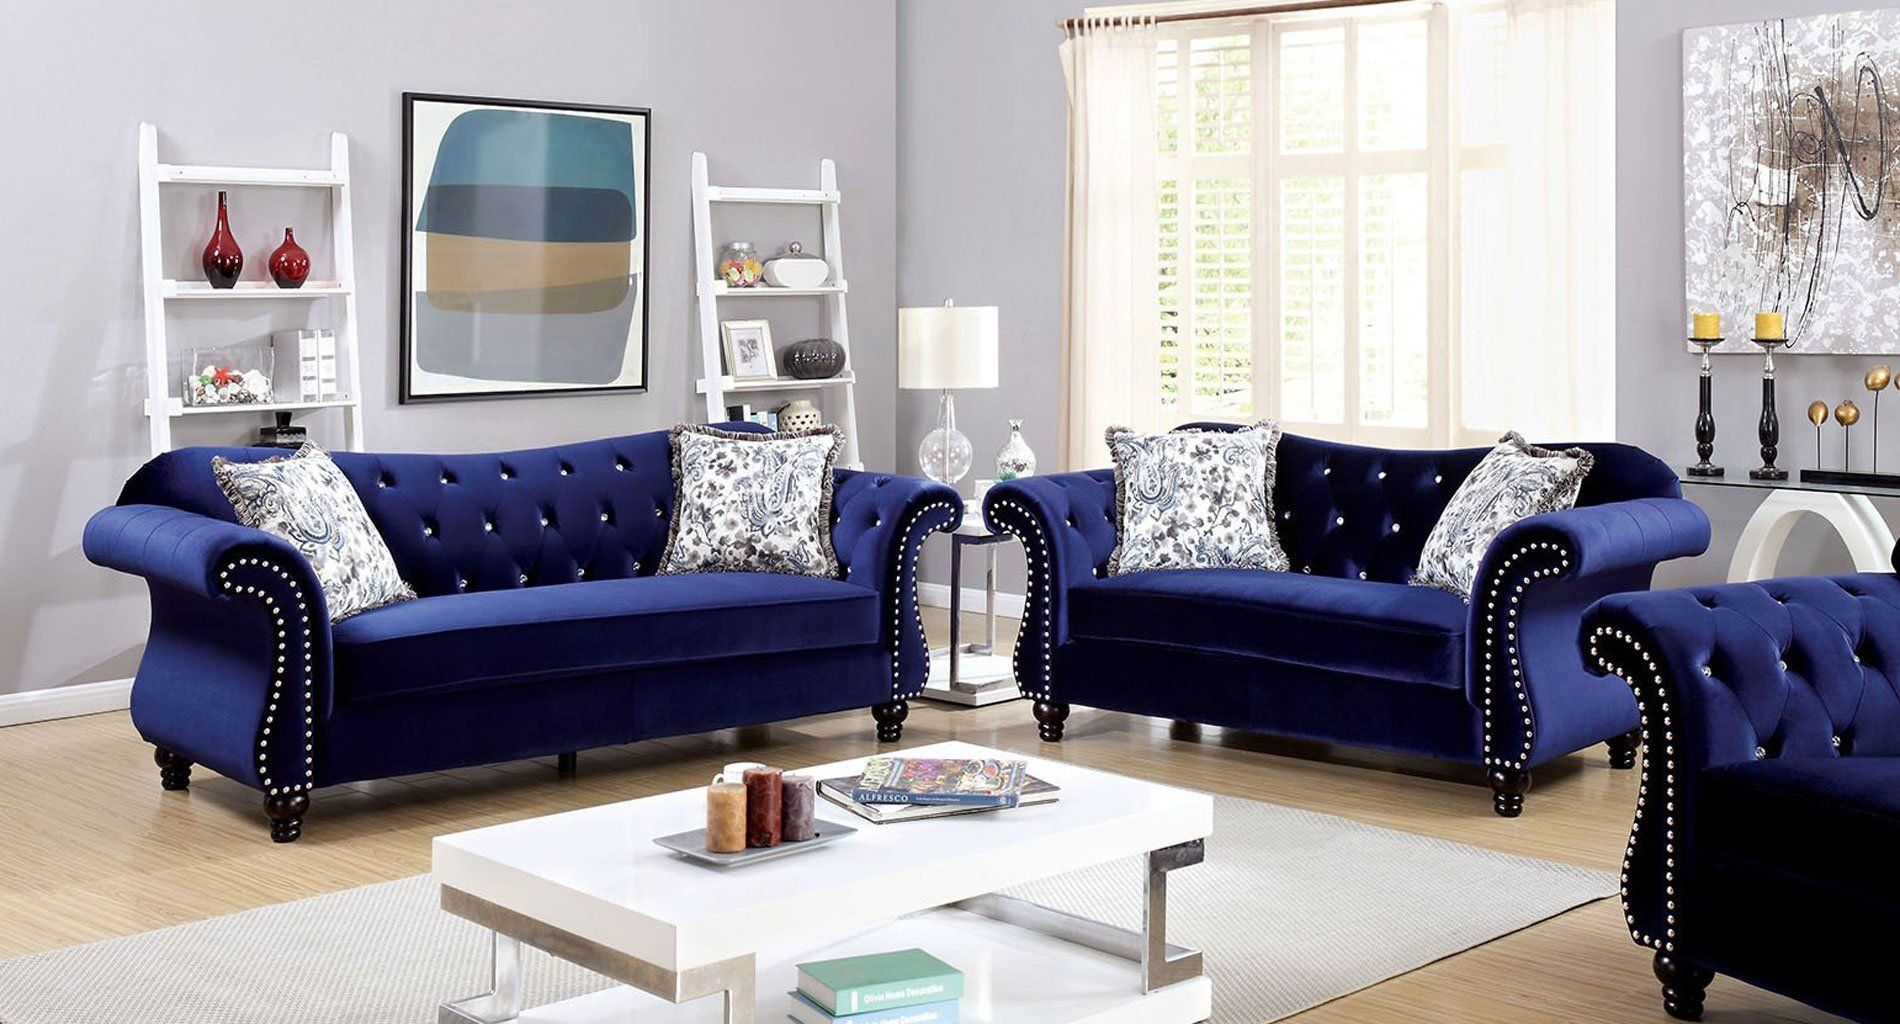 Jolanda Living Room Set (Blue)  Blue living room decor, Blue sofa